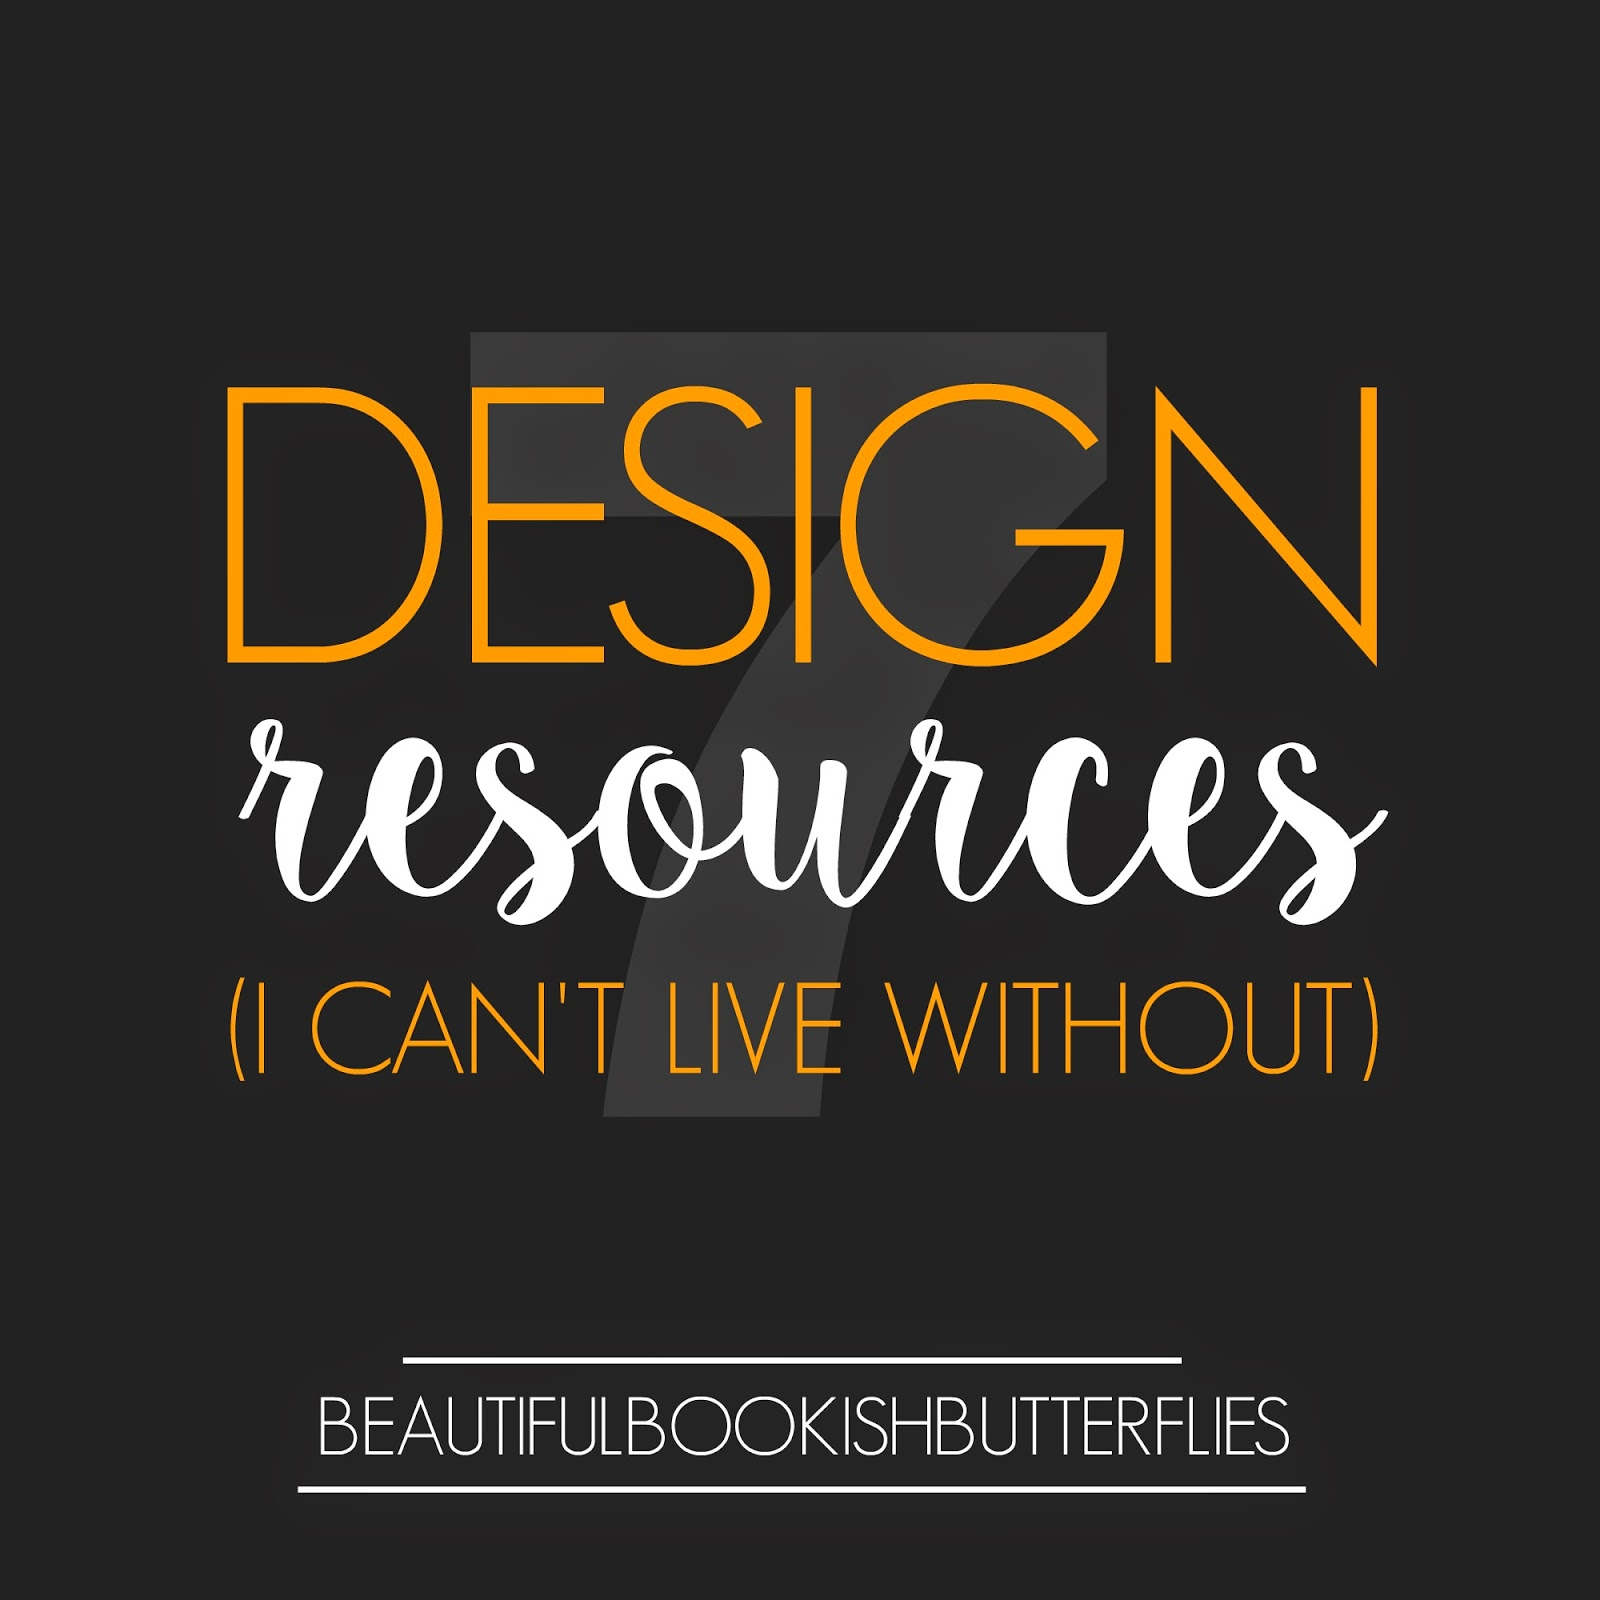 designresourcesyouneed